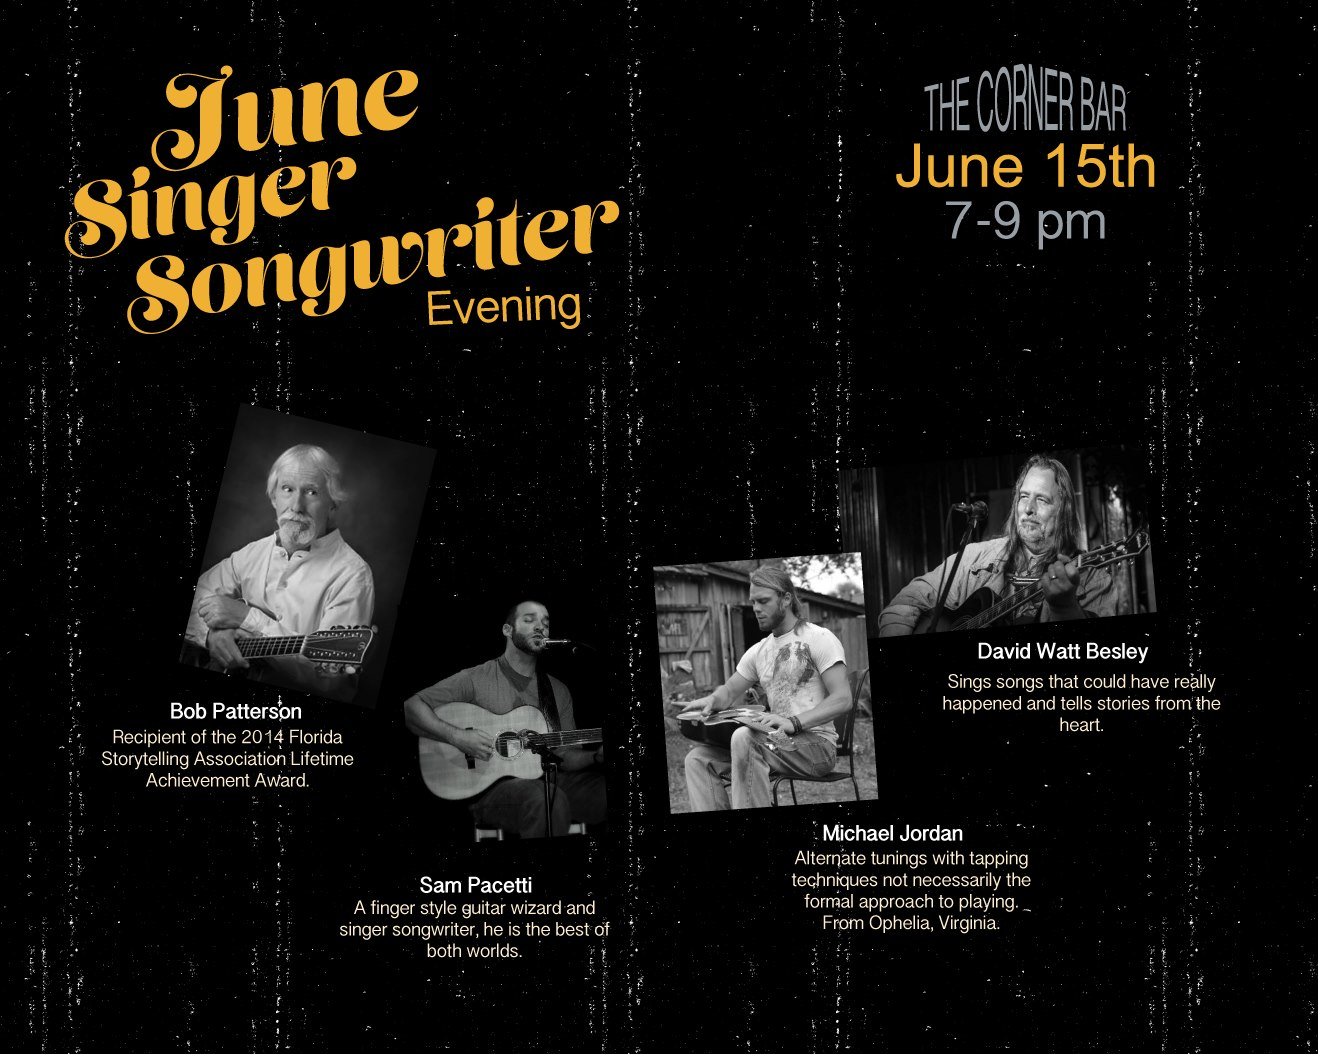 SINGER SONGWRITER NIGHT VI